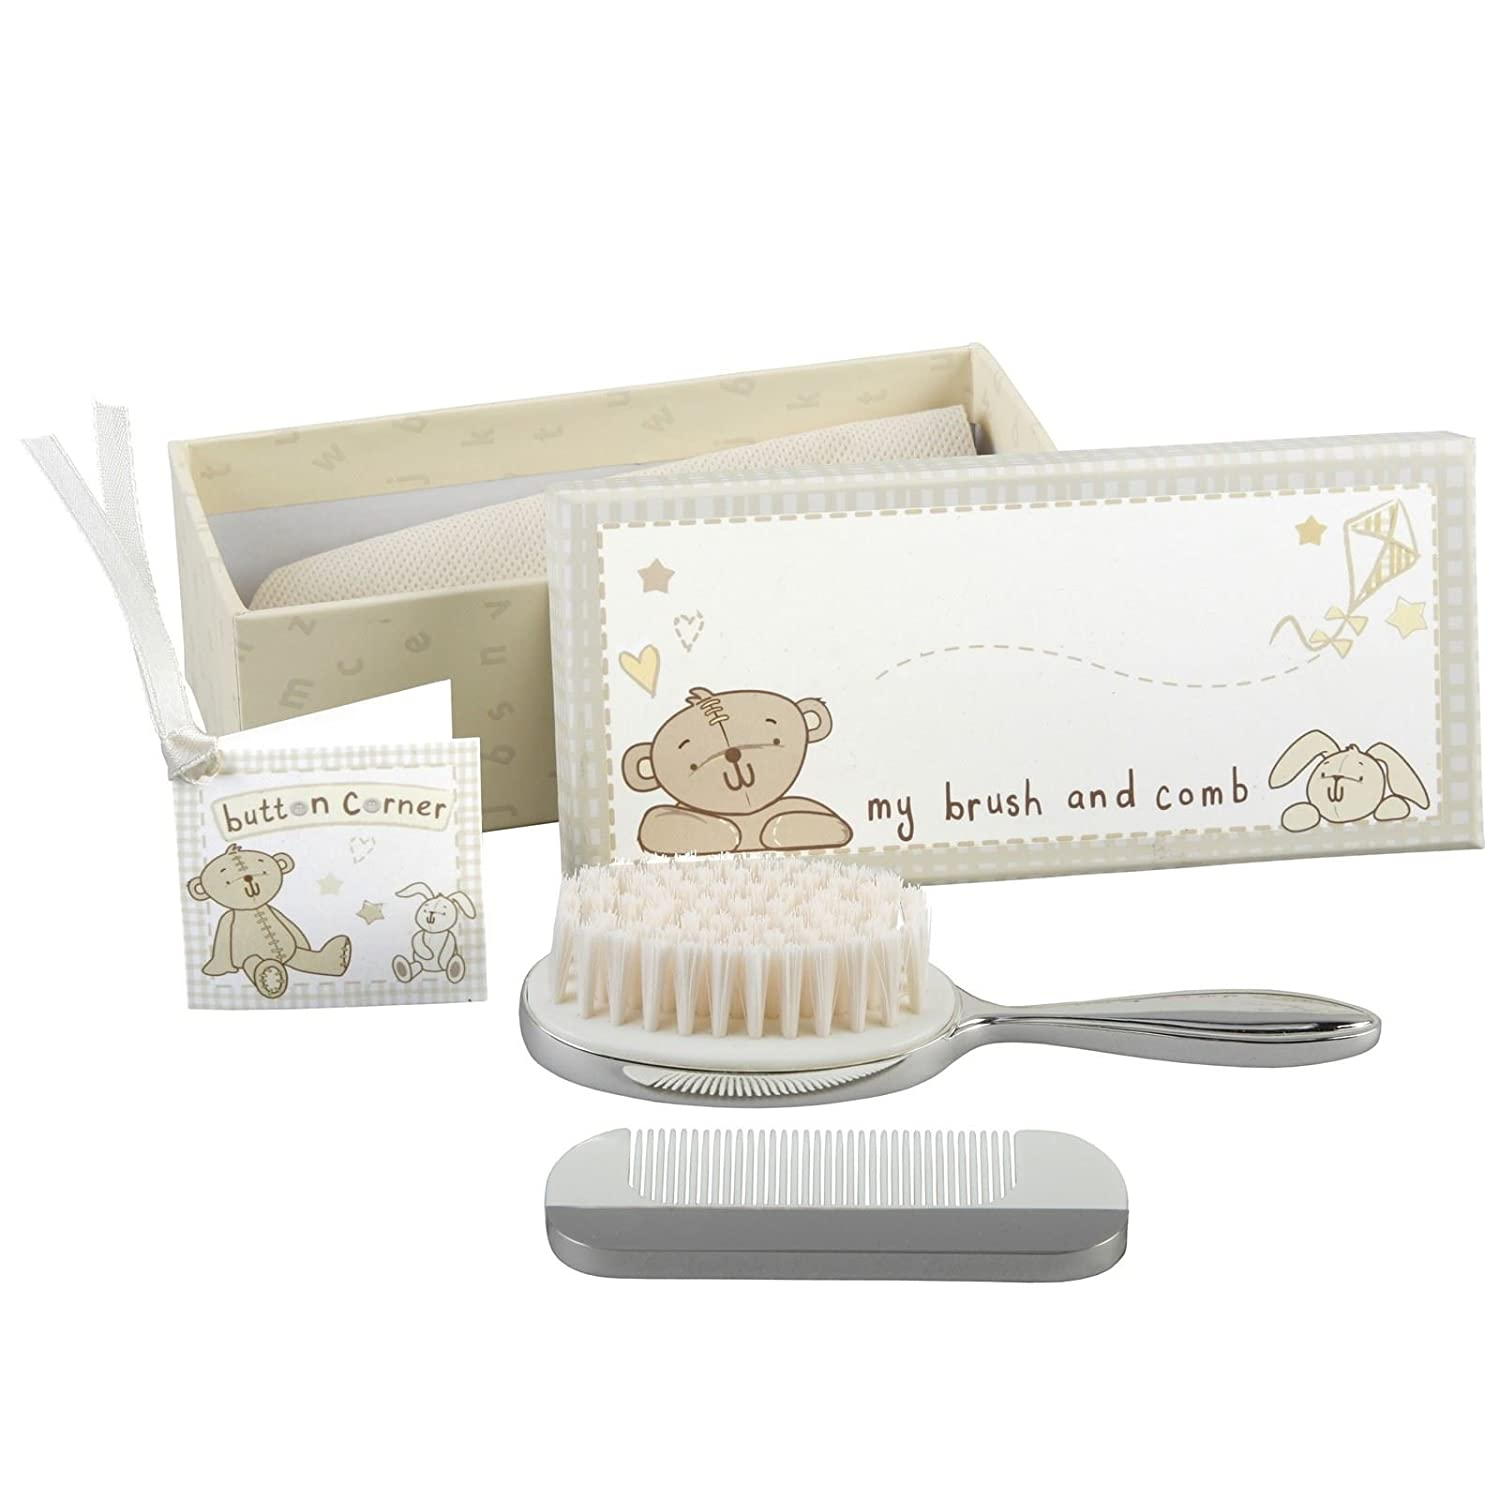 Button Corner Baby Brush & Comb Set